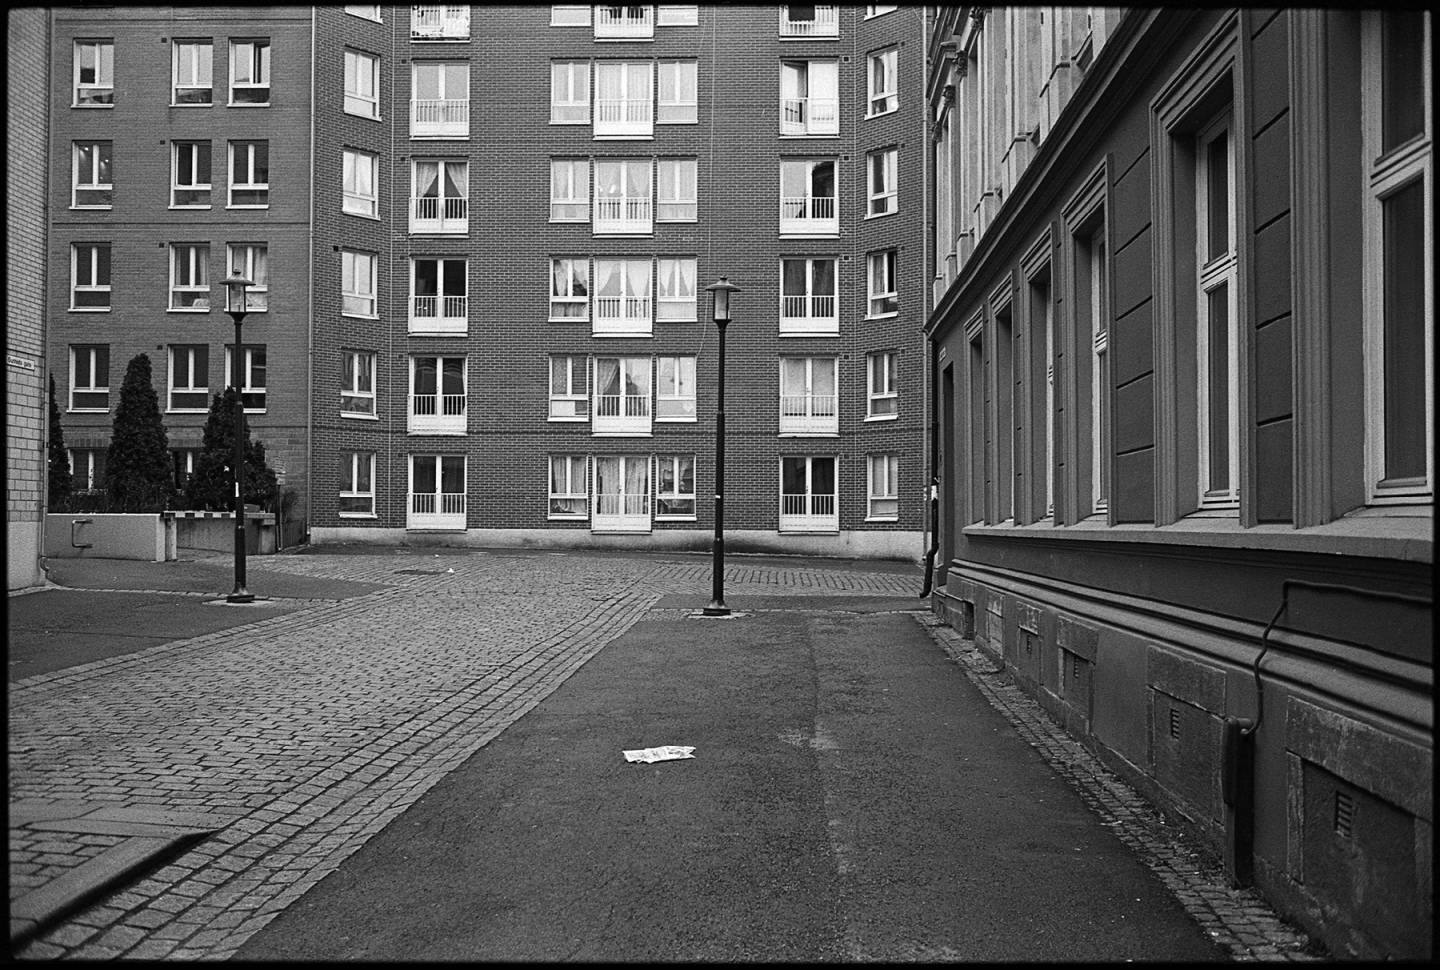 Lindsay Interview | Caught on Film: Christian Svinddal Documents the Streets of Oslo